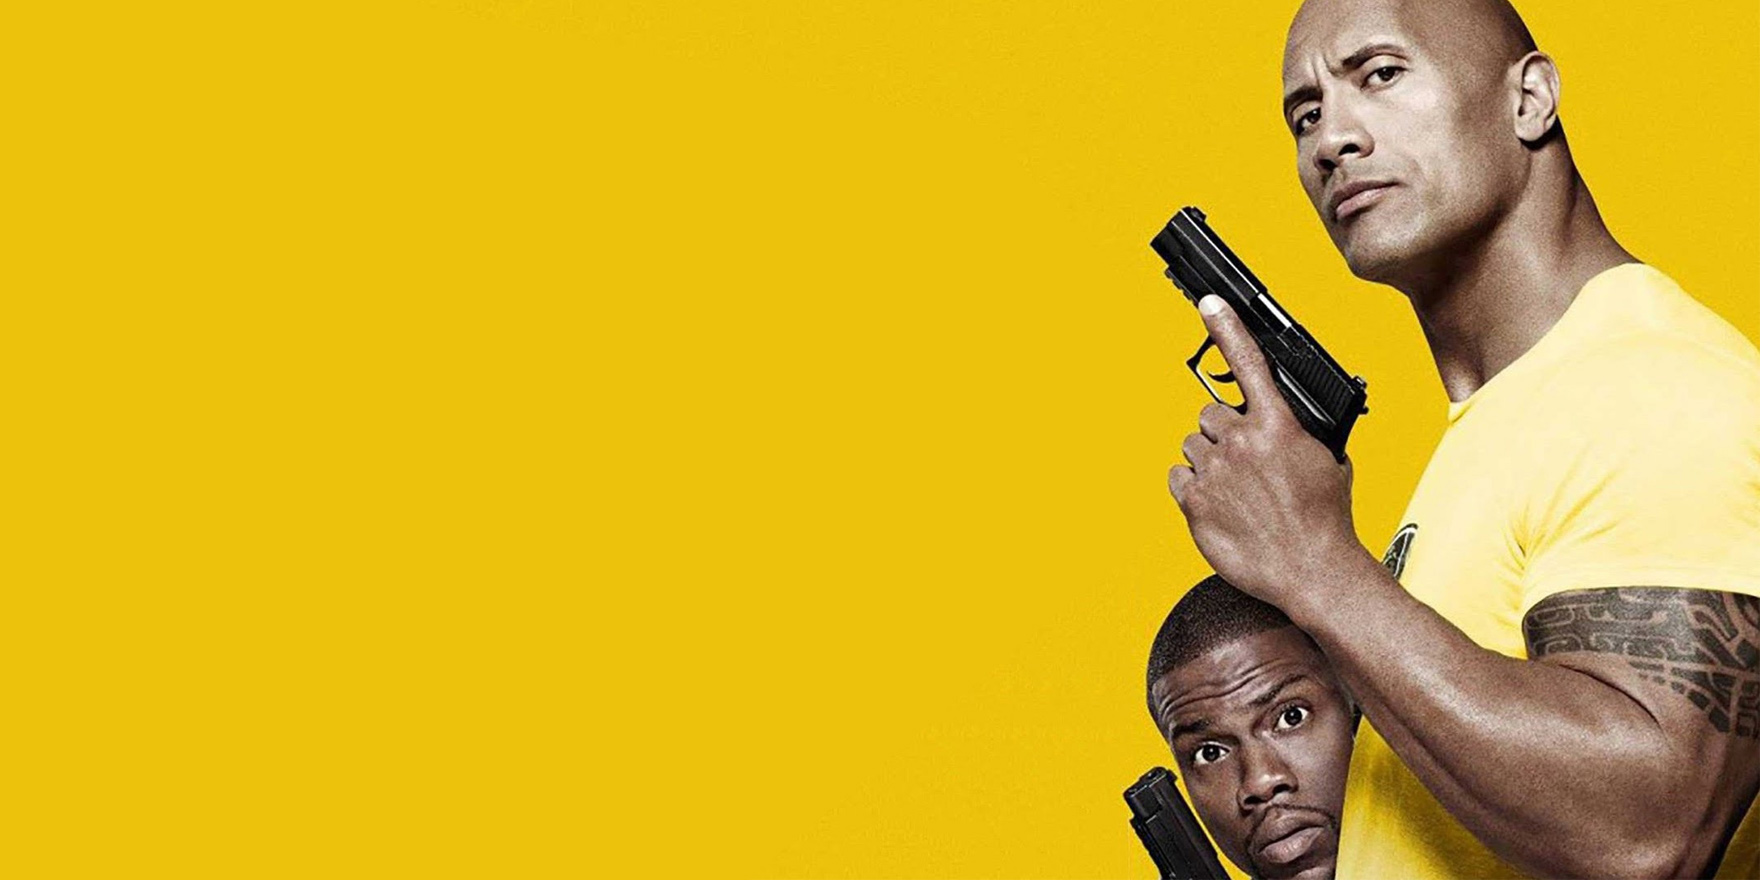 Central Intelligence - Header Image